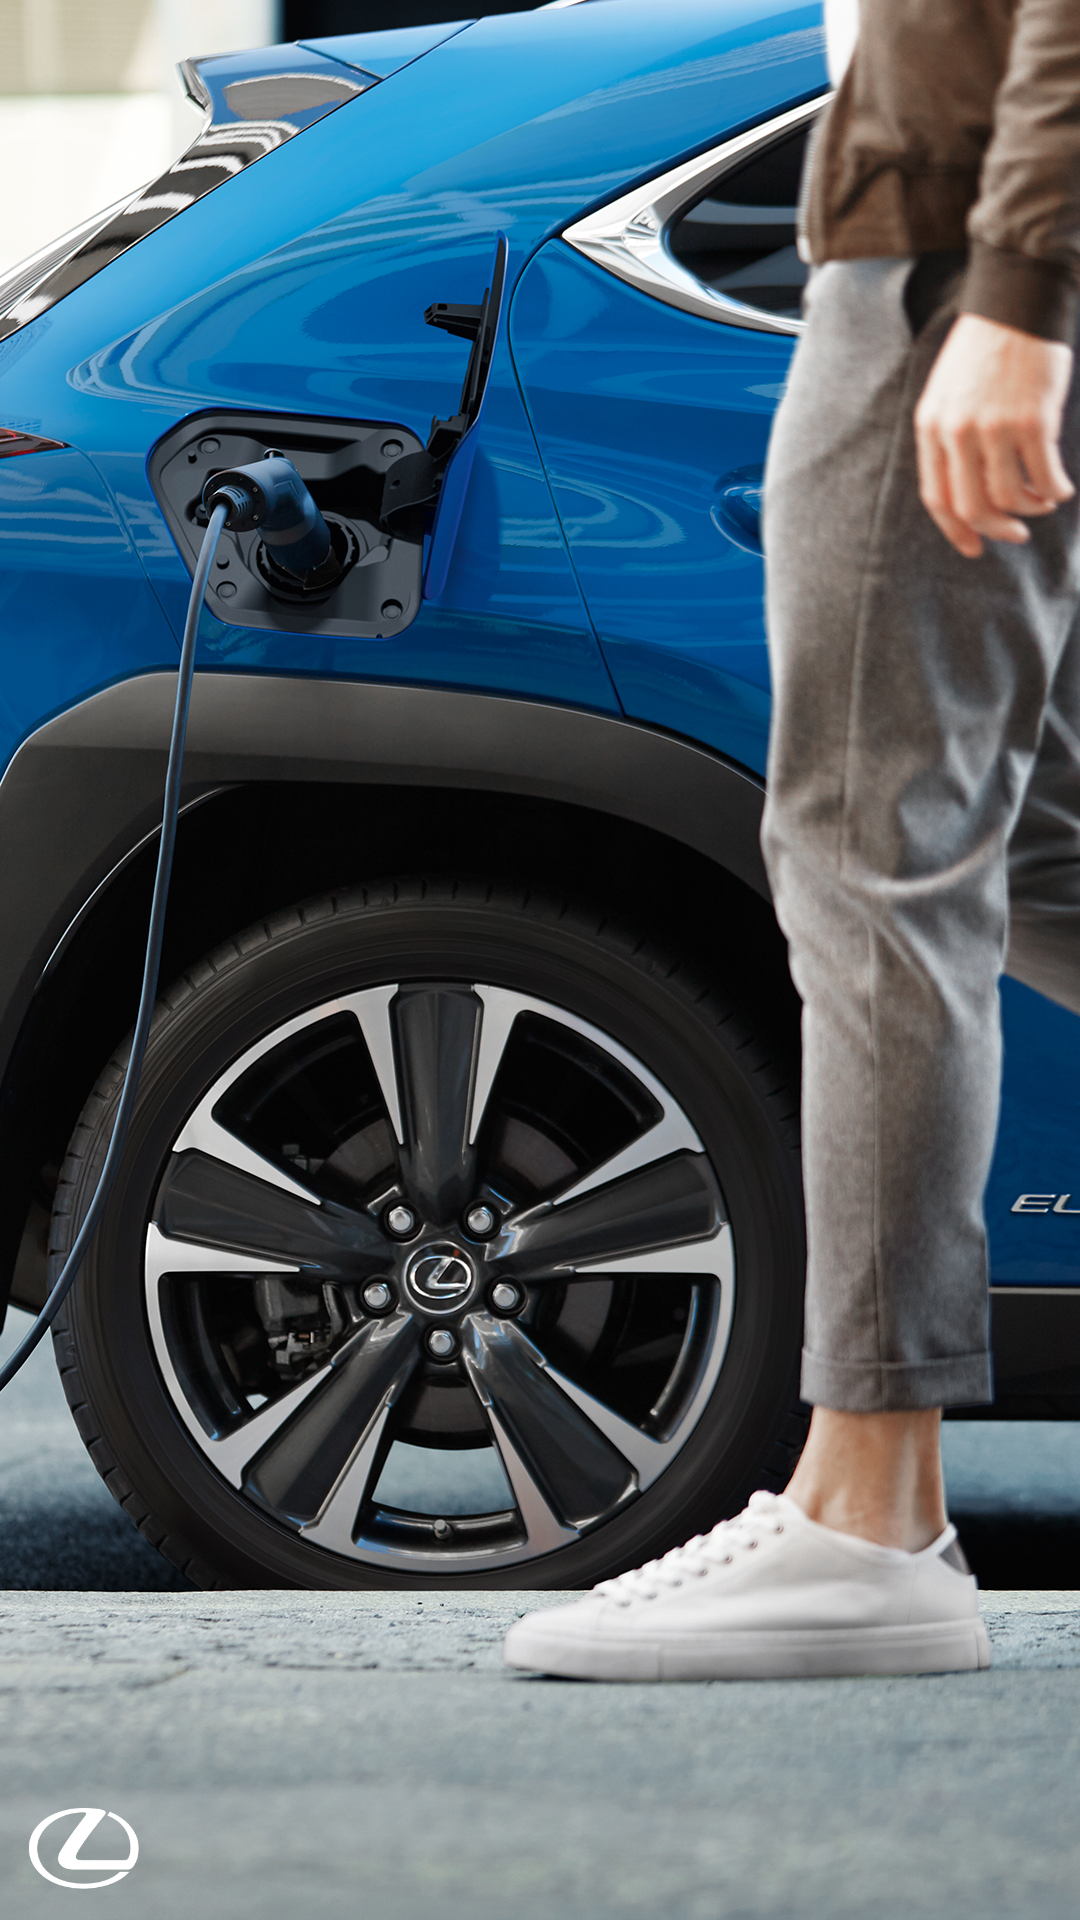 Accelerate 0-62mph in 7.5 seconds while producing CO2 emissions of 0g/km as you drive with the new Lexus UX 300e. Click to find out more. #Lexus #LexusUX #UX300e #ElectricCars #NewCars #Electric #LuxuryCars #SUV #LuxurySUV #FamilySUV